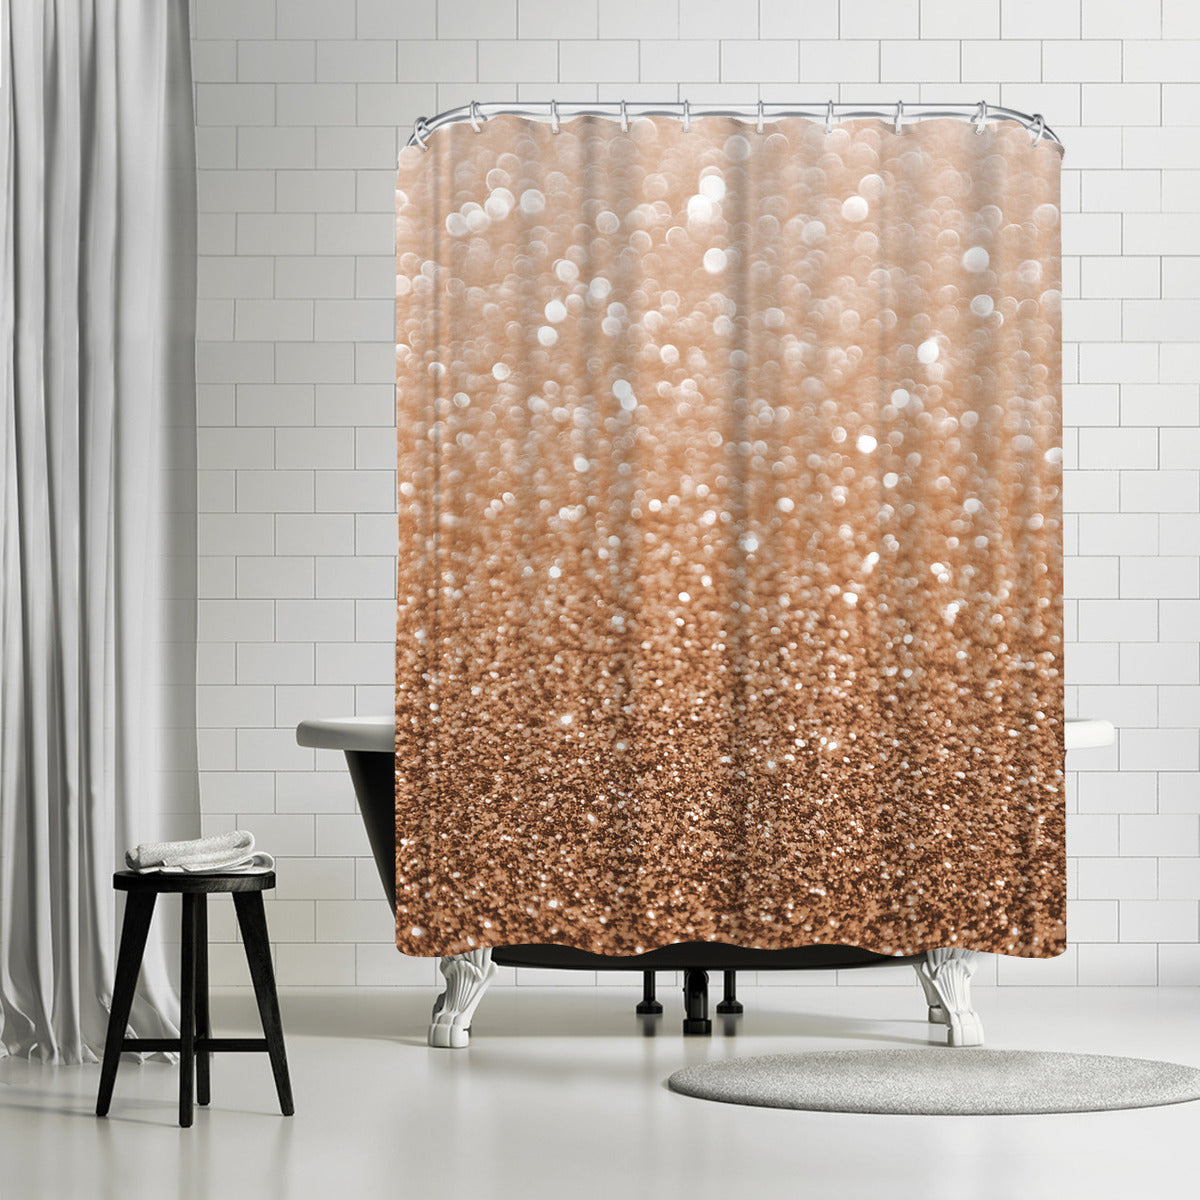 Copper Shiny Texture by Emanuela Carratoni Shower Curtain - Shower Curtain - Americanflat